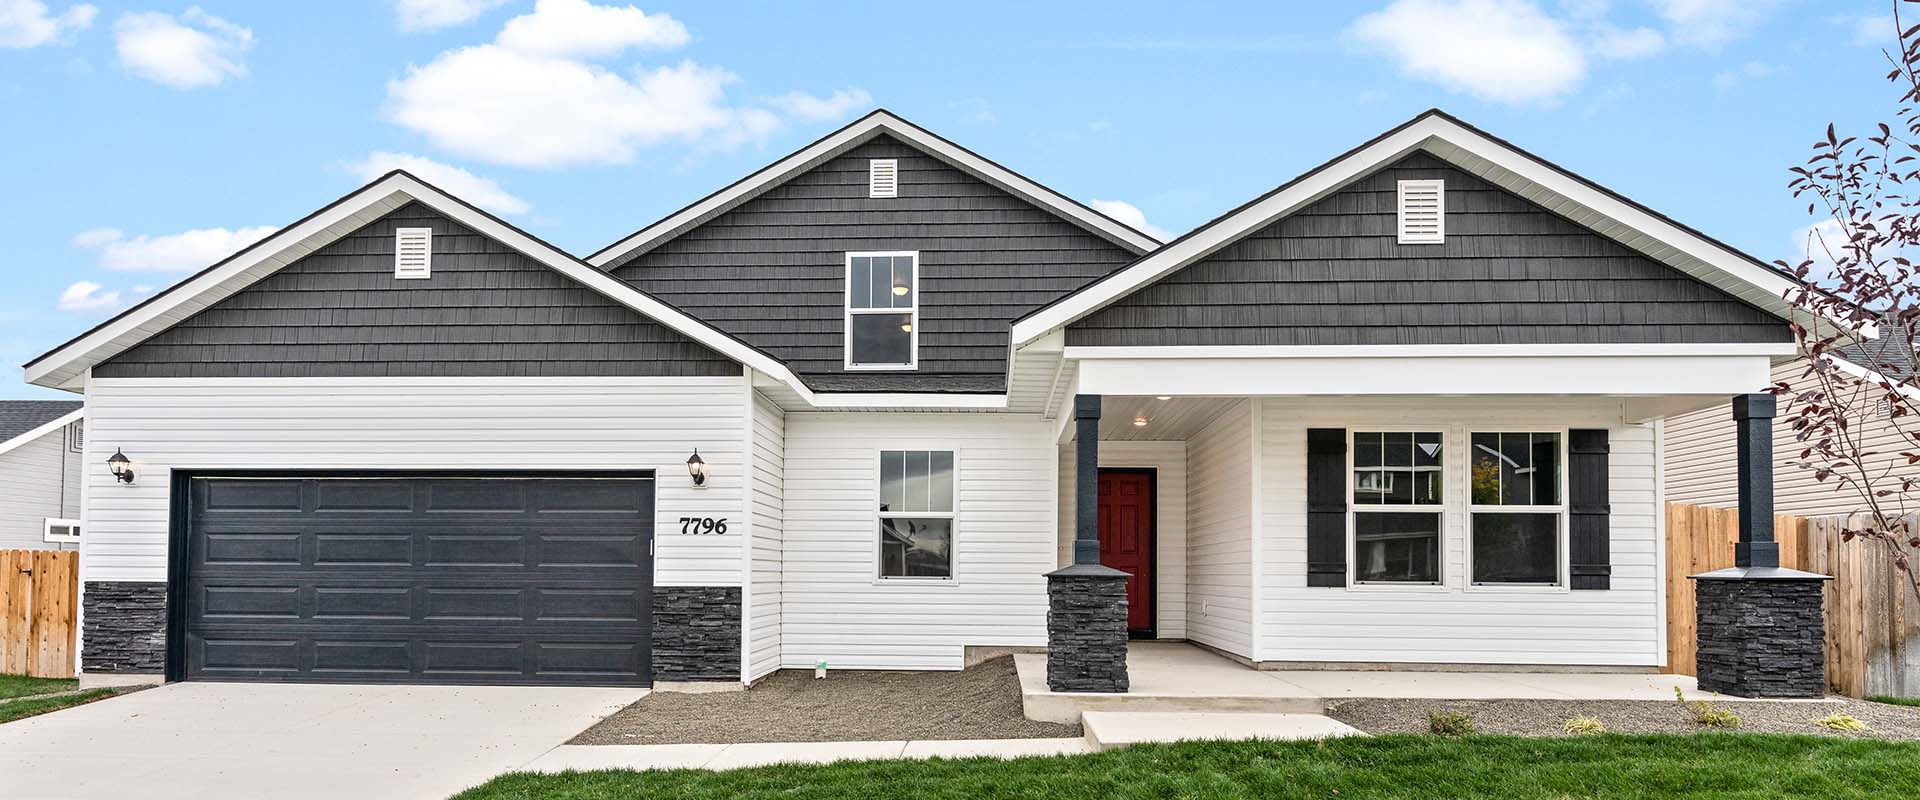 Opal-Bonus-Exterior new-homes-boise-idaho-hubble-homes.jpg